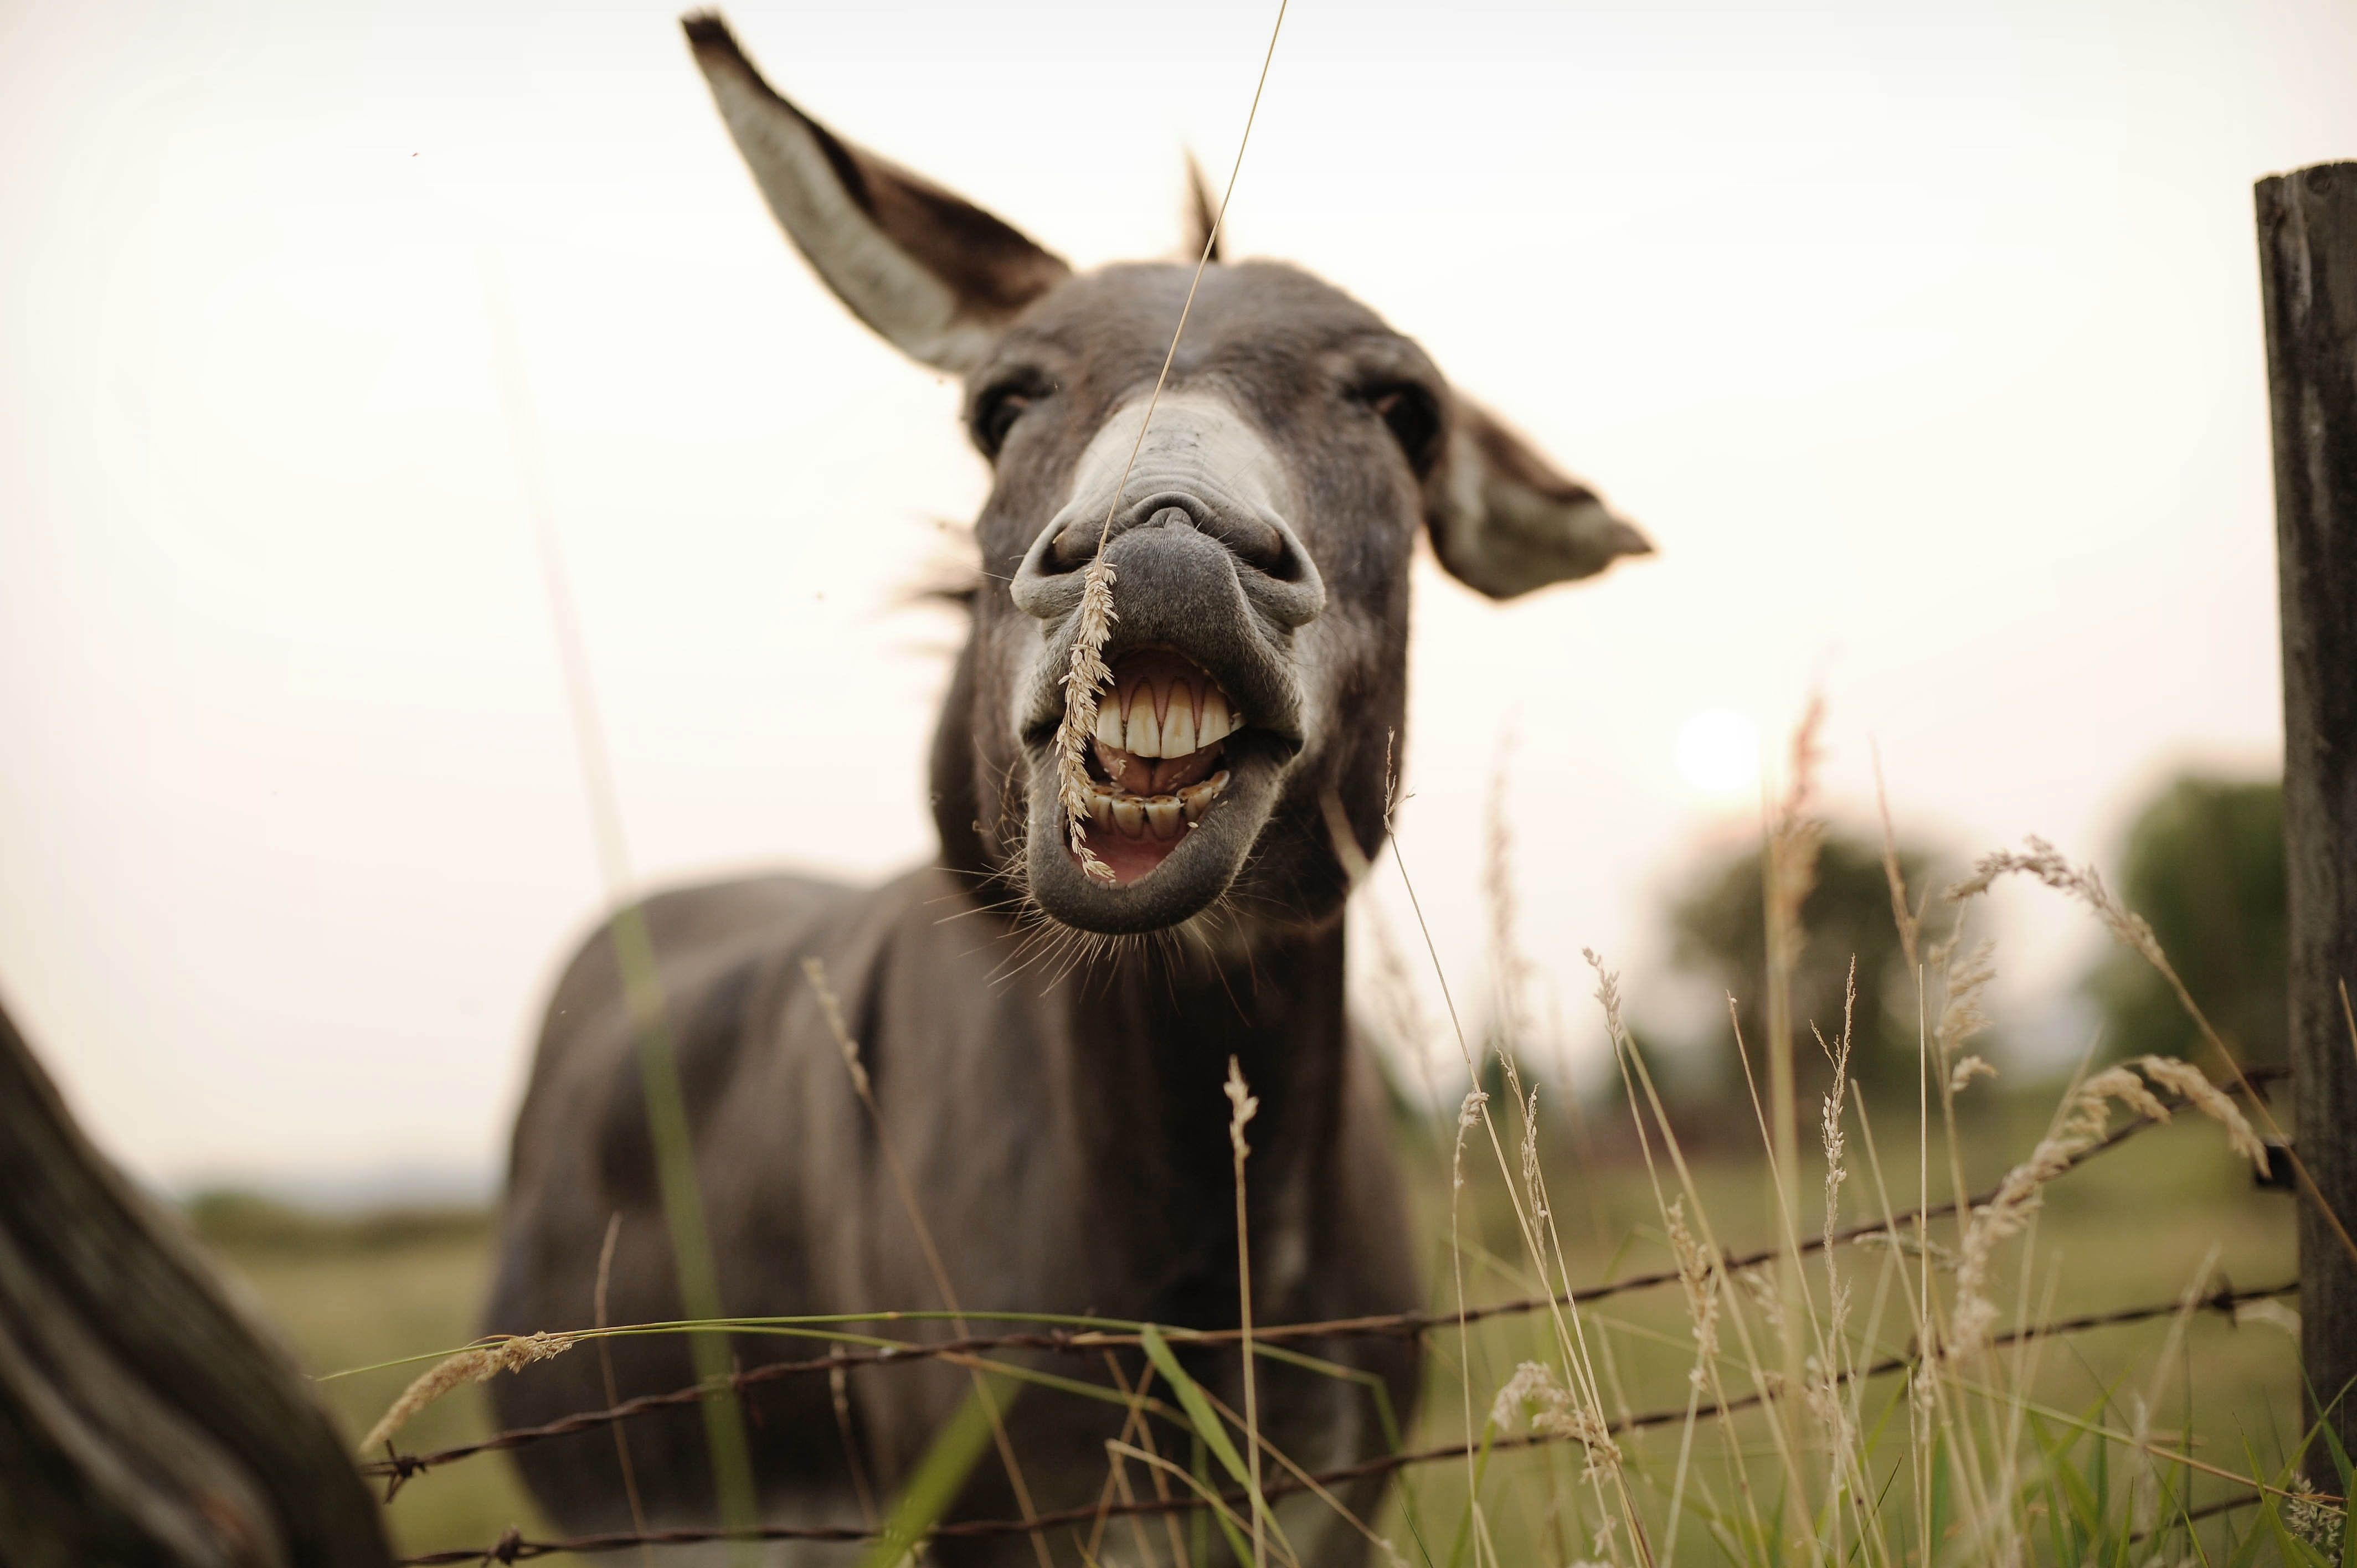 Donkey standing at fence.